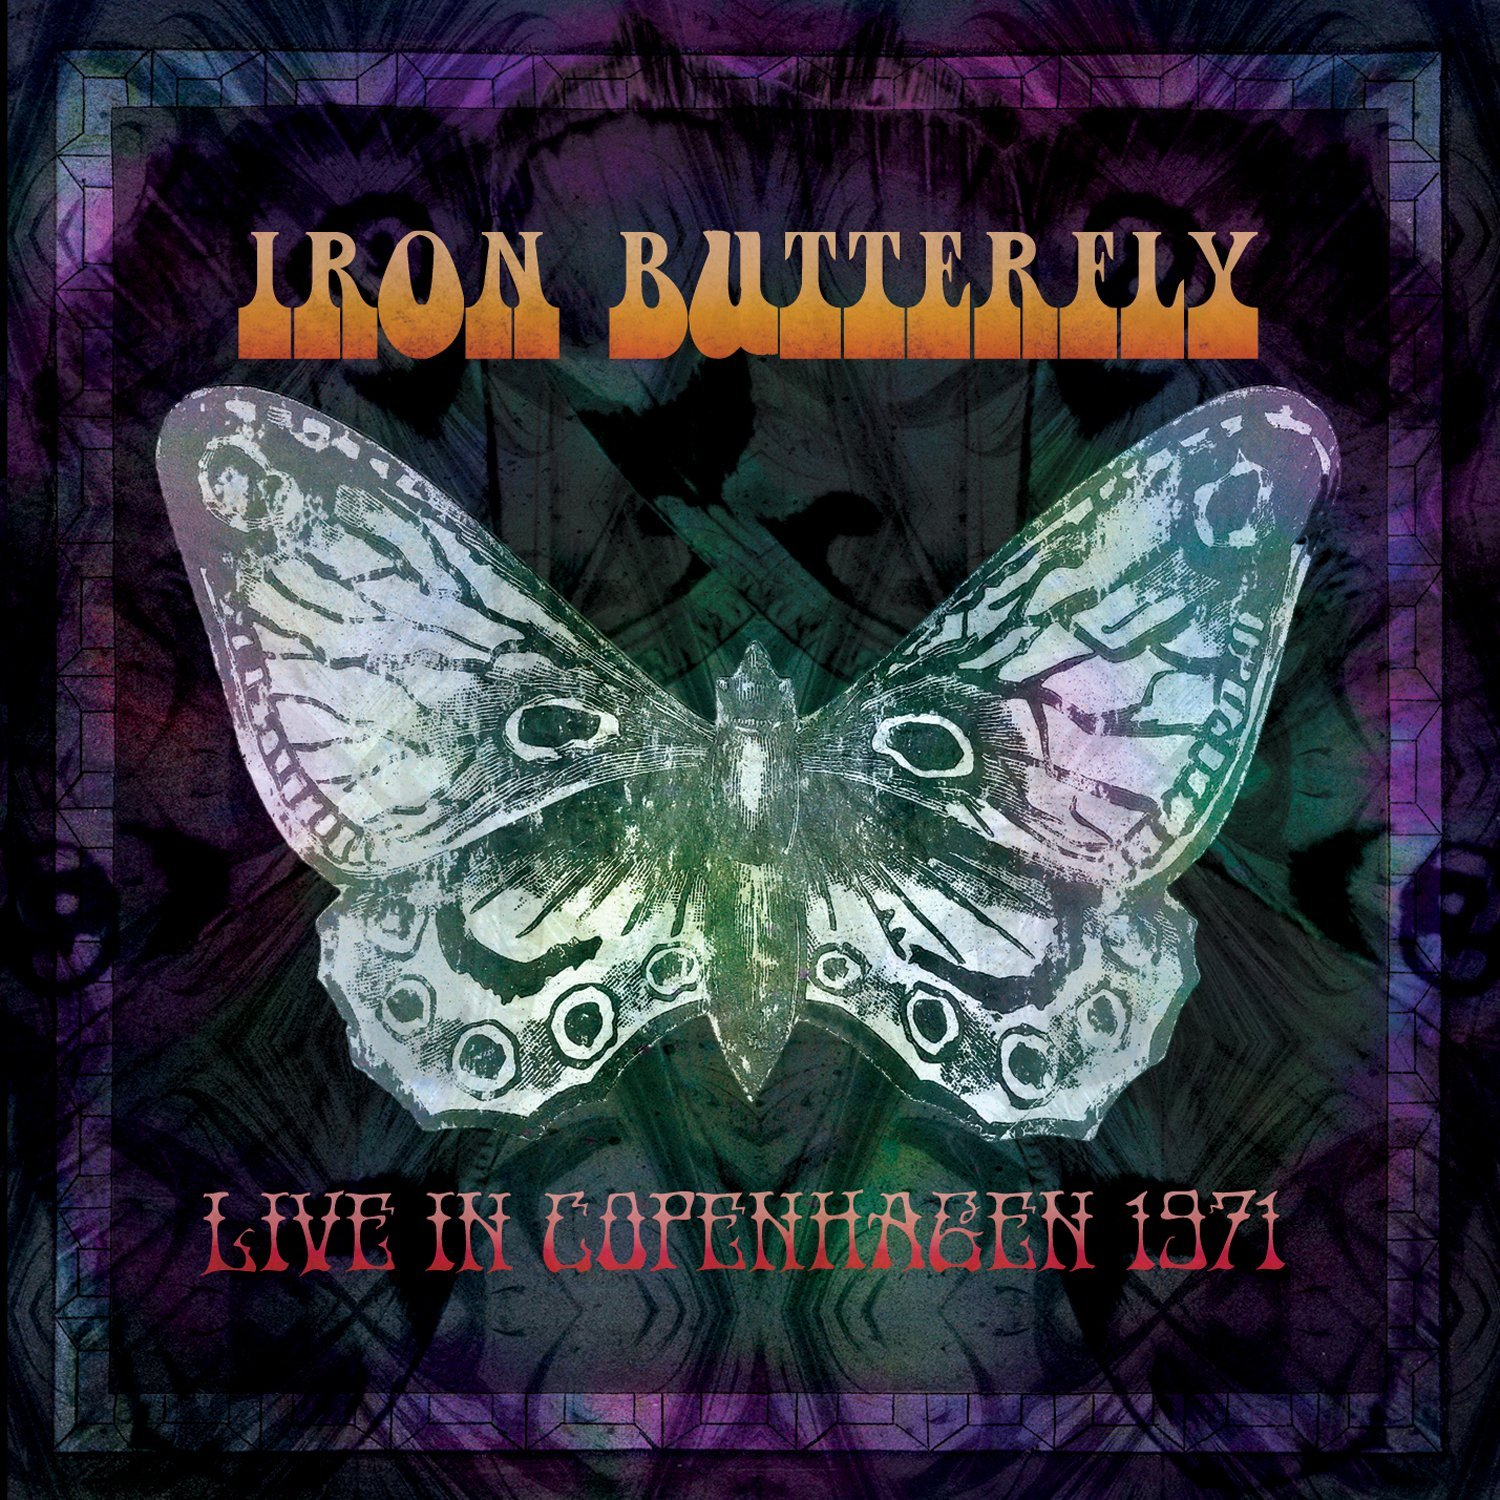 Iron Butterfly — Live in Copenhagen 1971